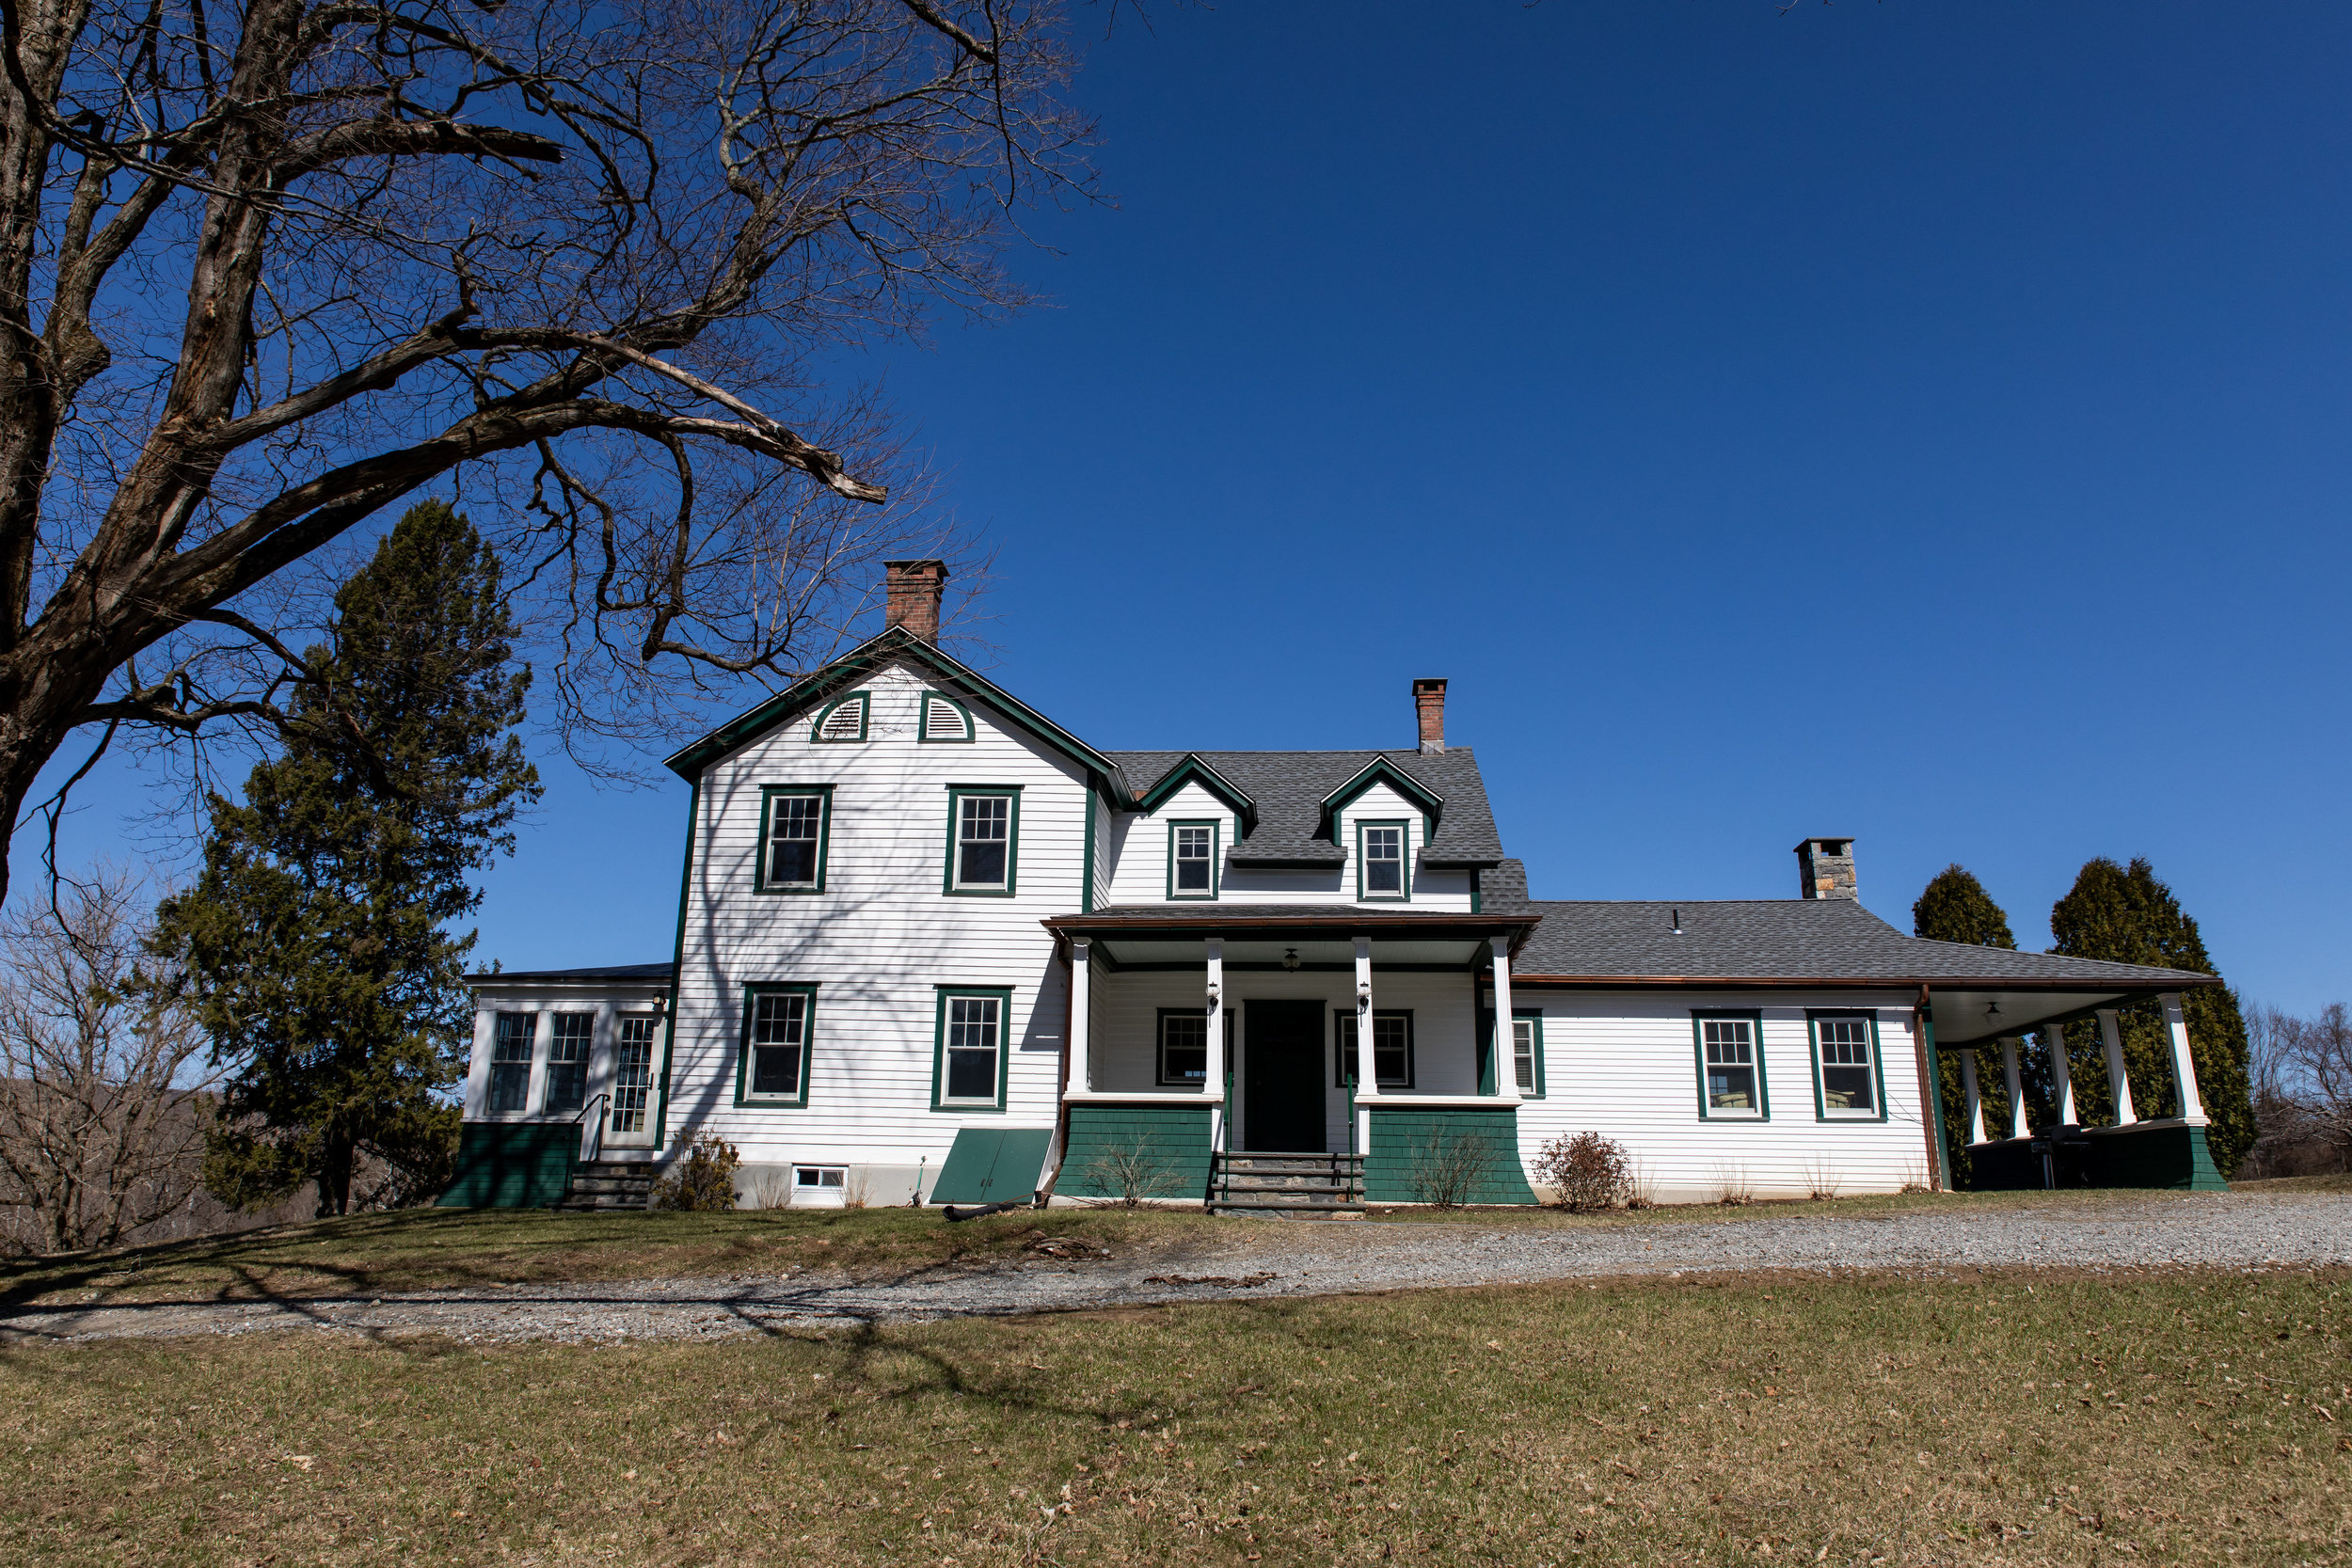 Farmhouse-0221.jpg